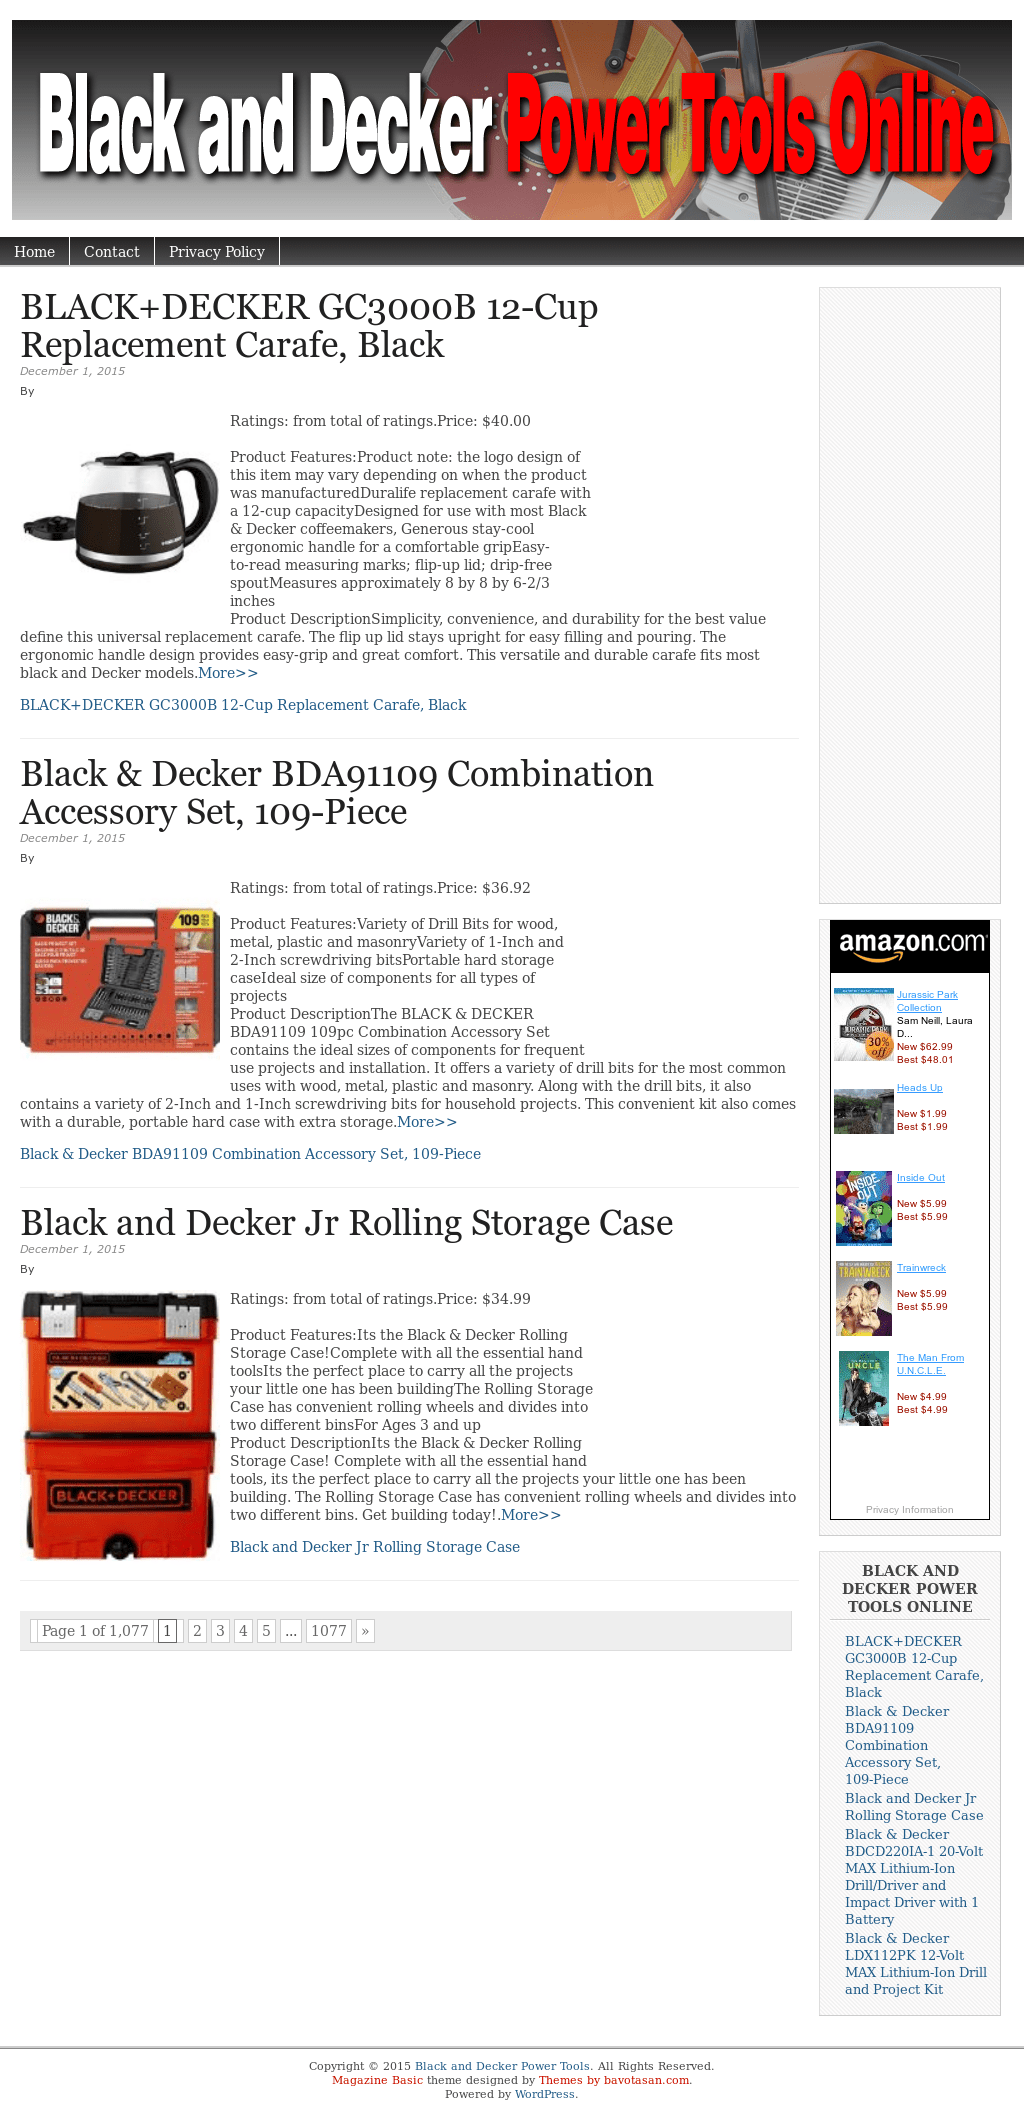 Black And Decker History